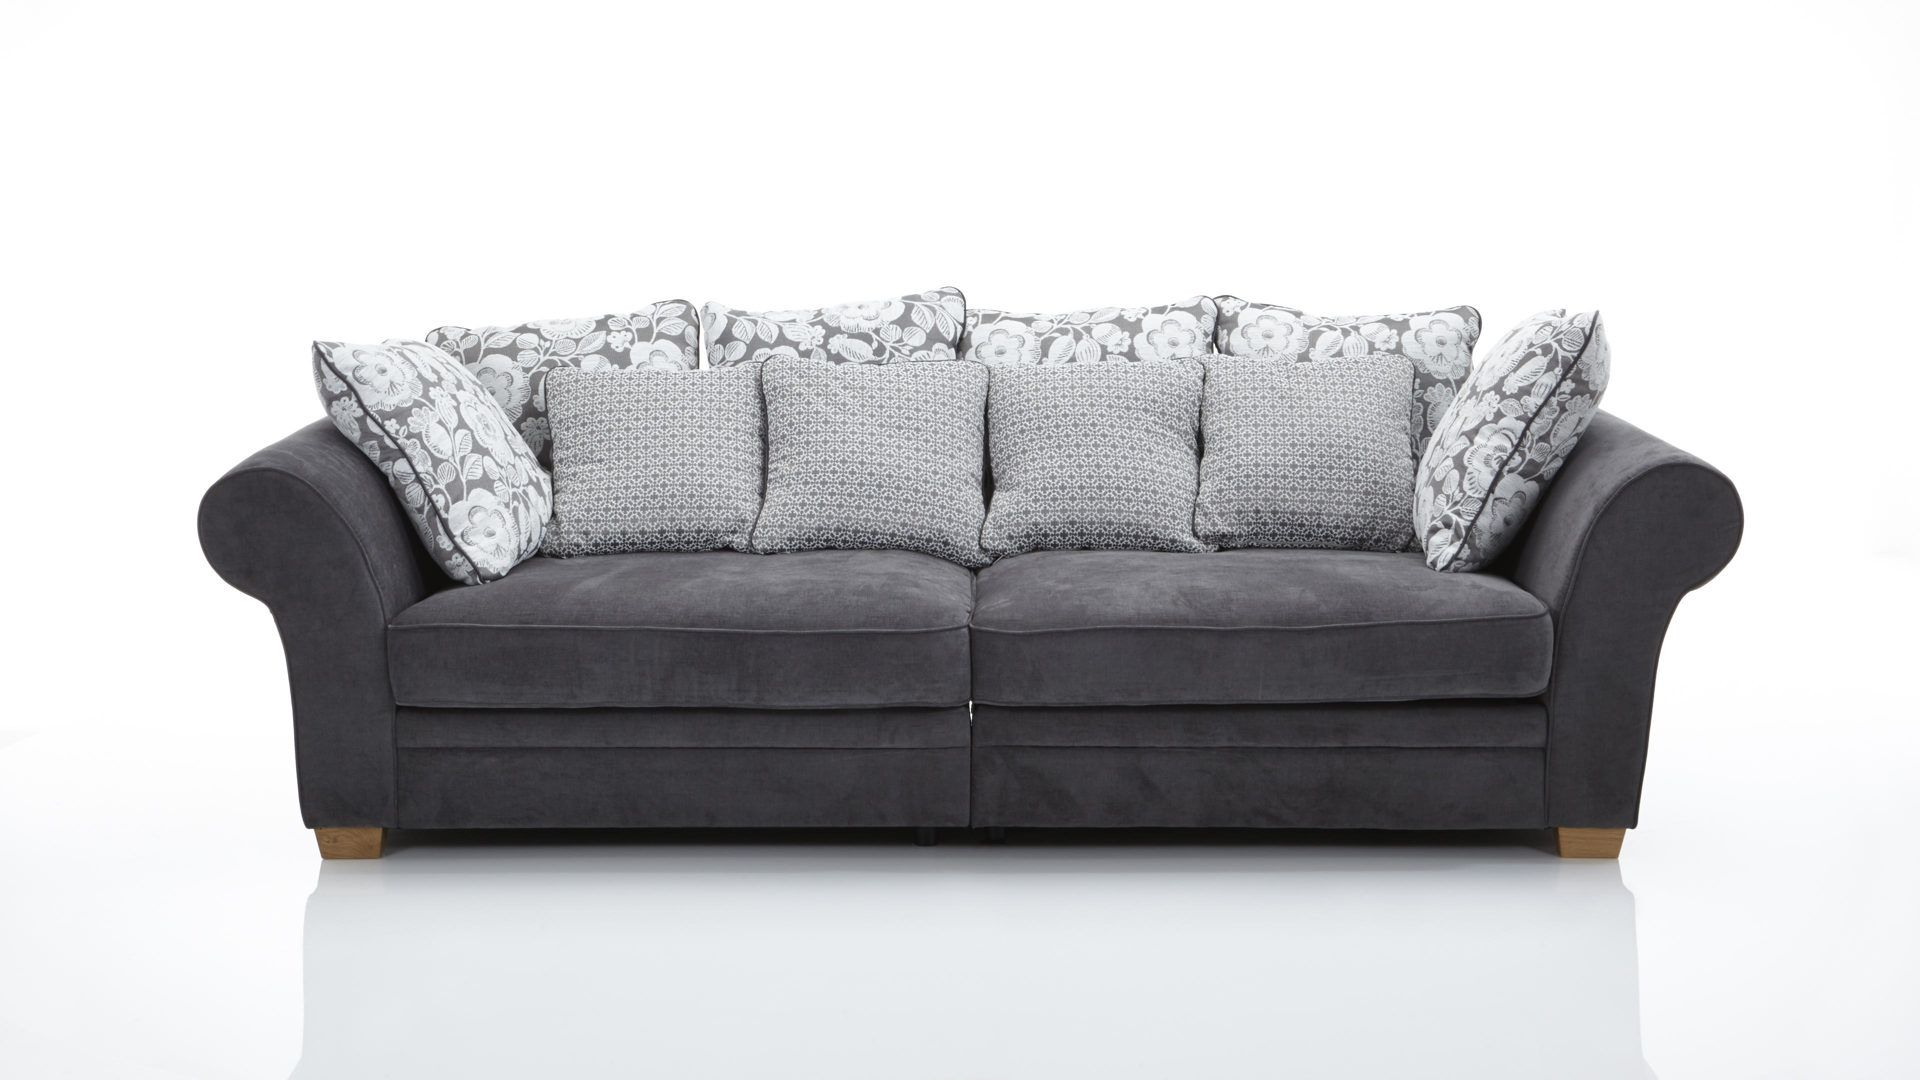 m bel staude mega sofa im modernen landhausstil gutmann factory mega sofa im modernen. Black Bedroom Furniture Sets. Home Design Ideas